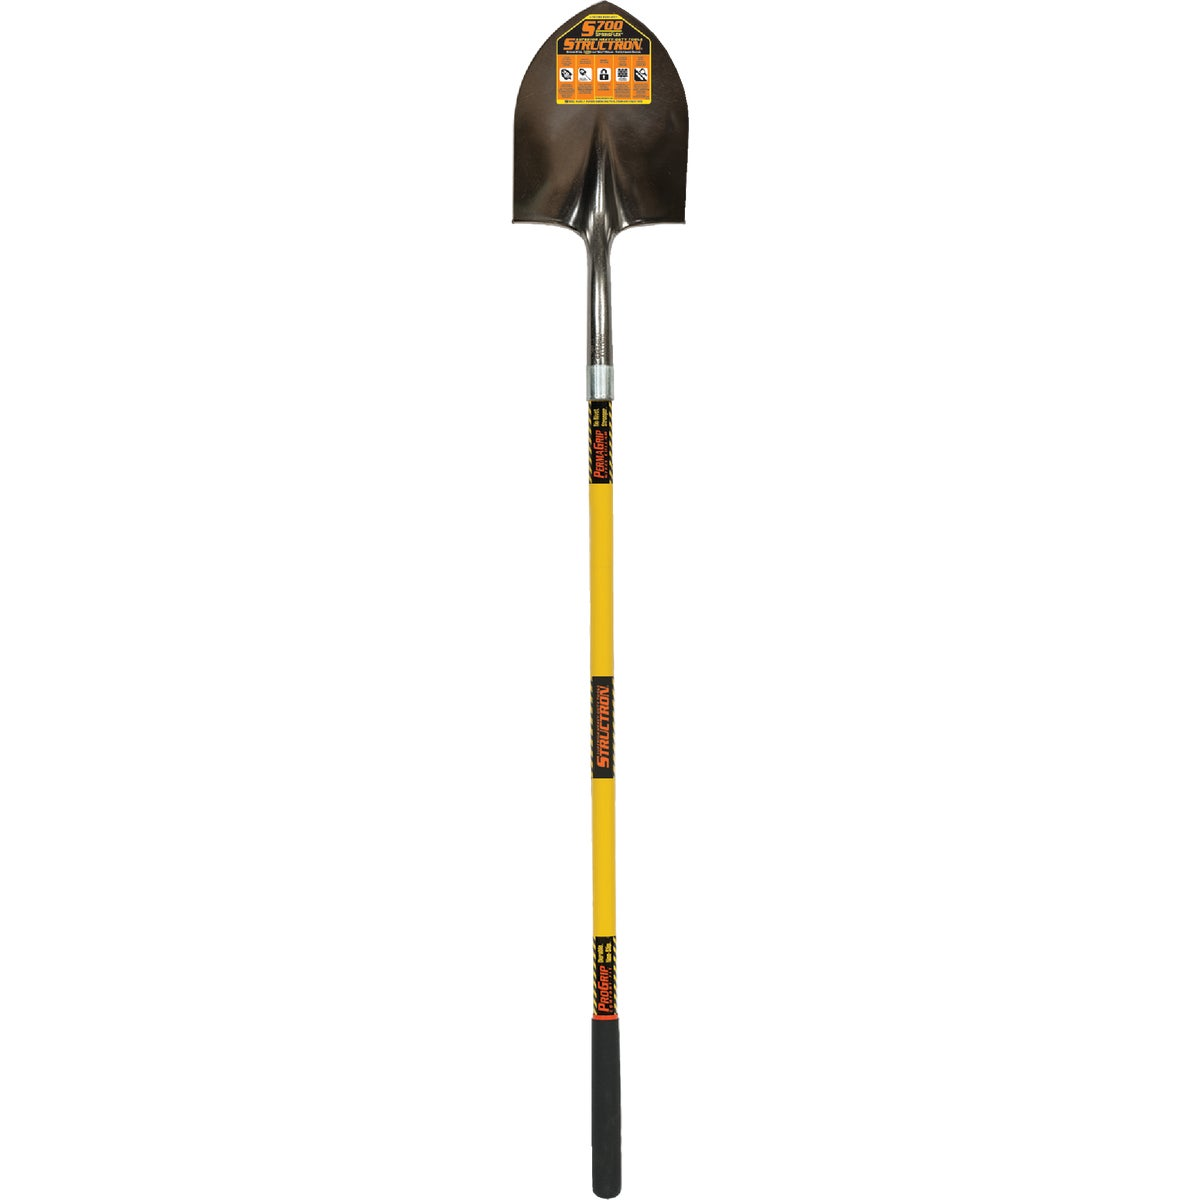 LONG HDL RND PT SHOVEL - 49730 by Seymour Mfg Co